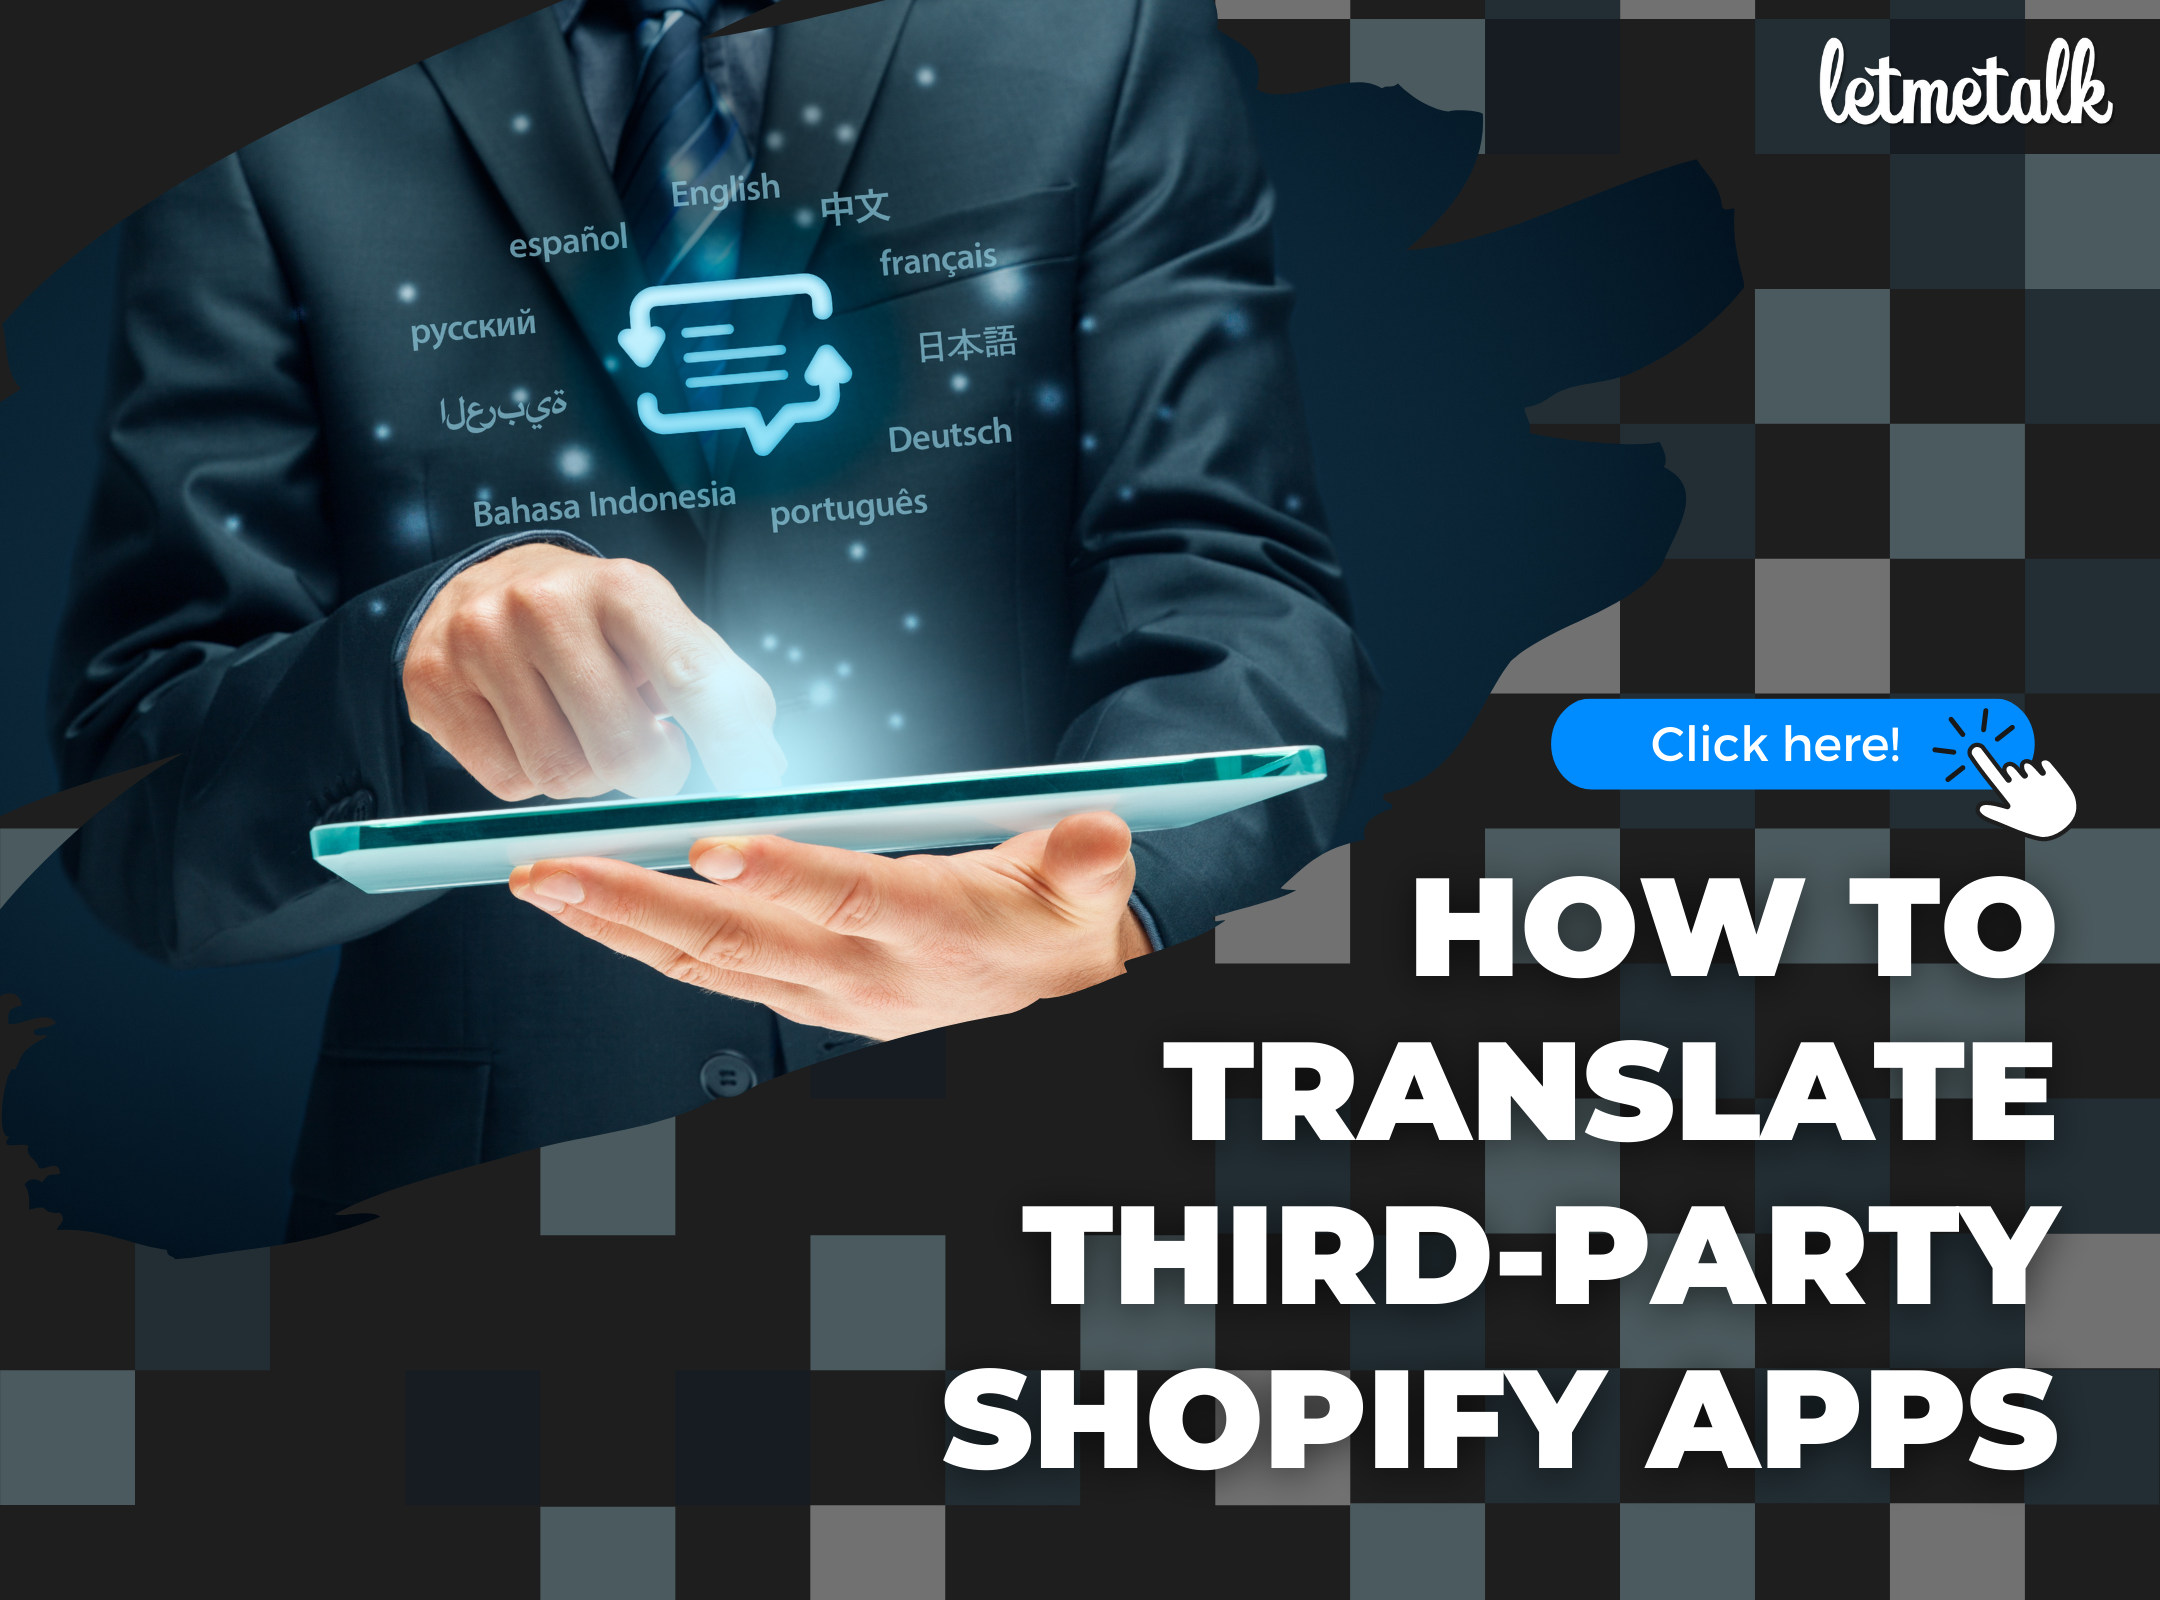 How To Translate Third-Party Shopify Apps | Letmetalk